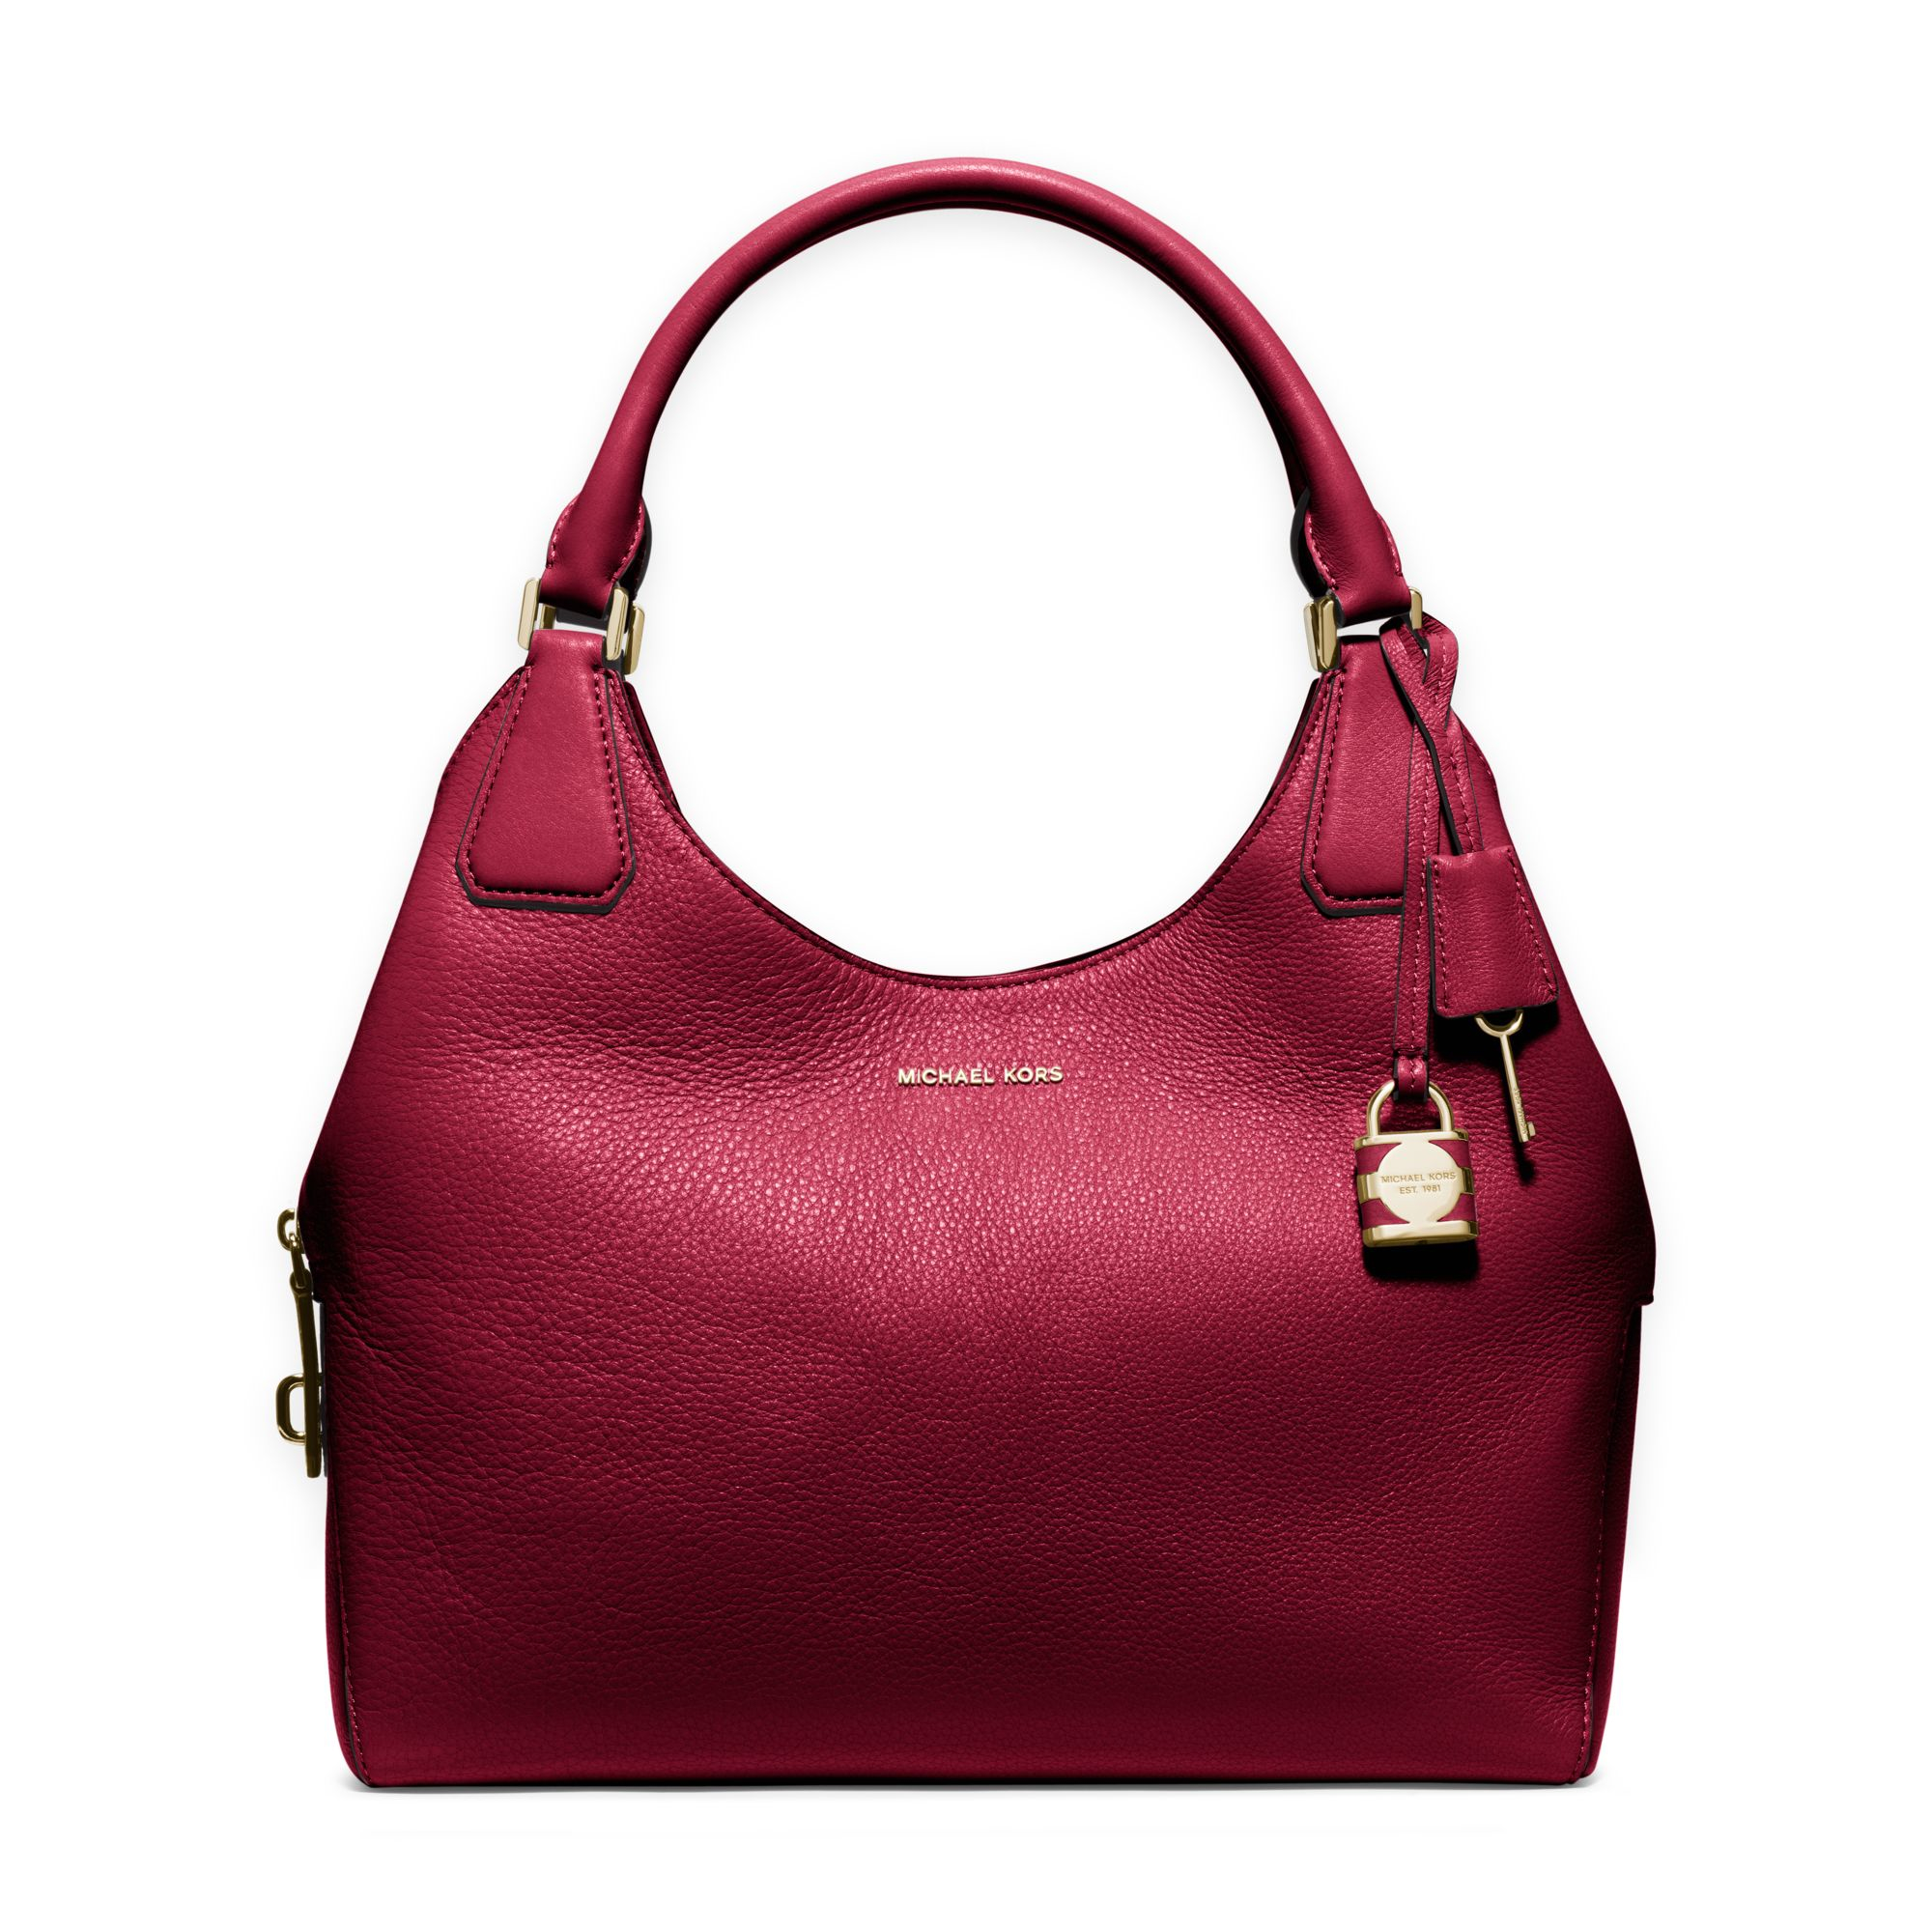 ed8cd850ed Lyst - Michael Kors Camille Large Leather Shoulder Bag in Red